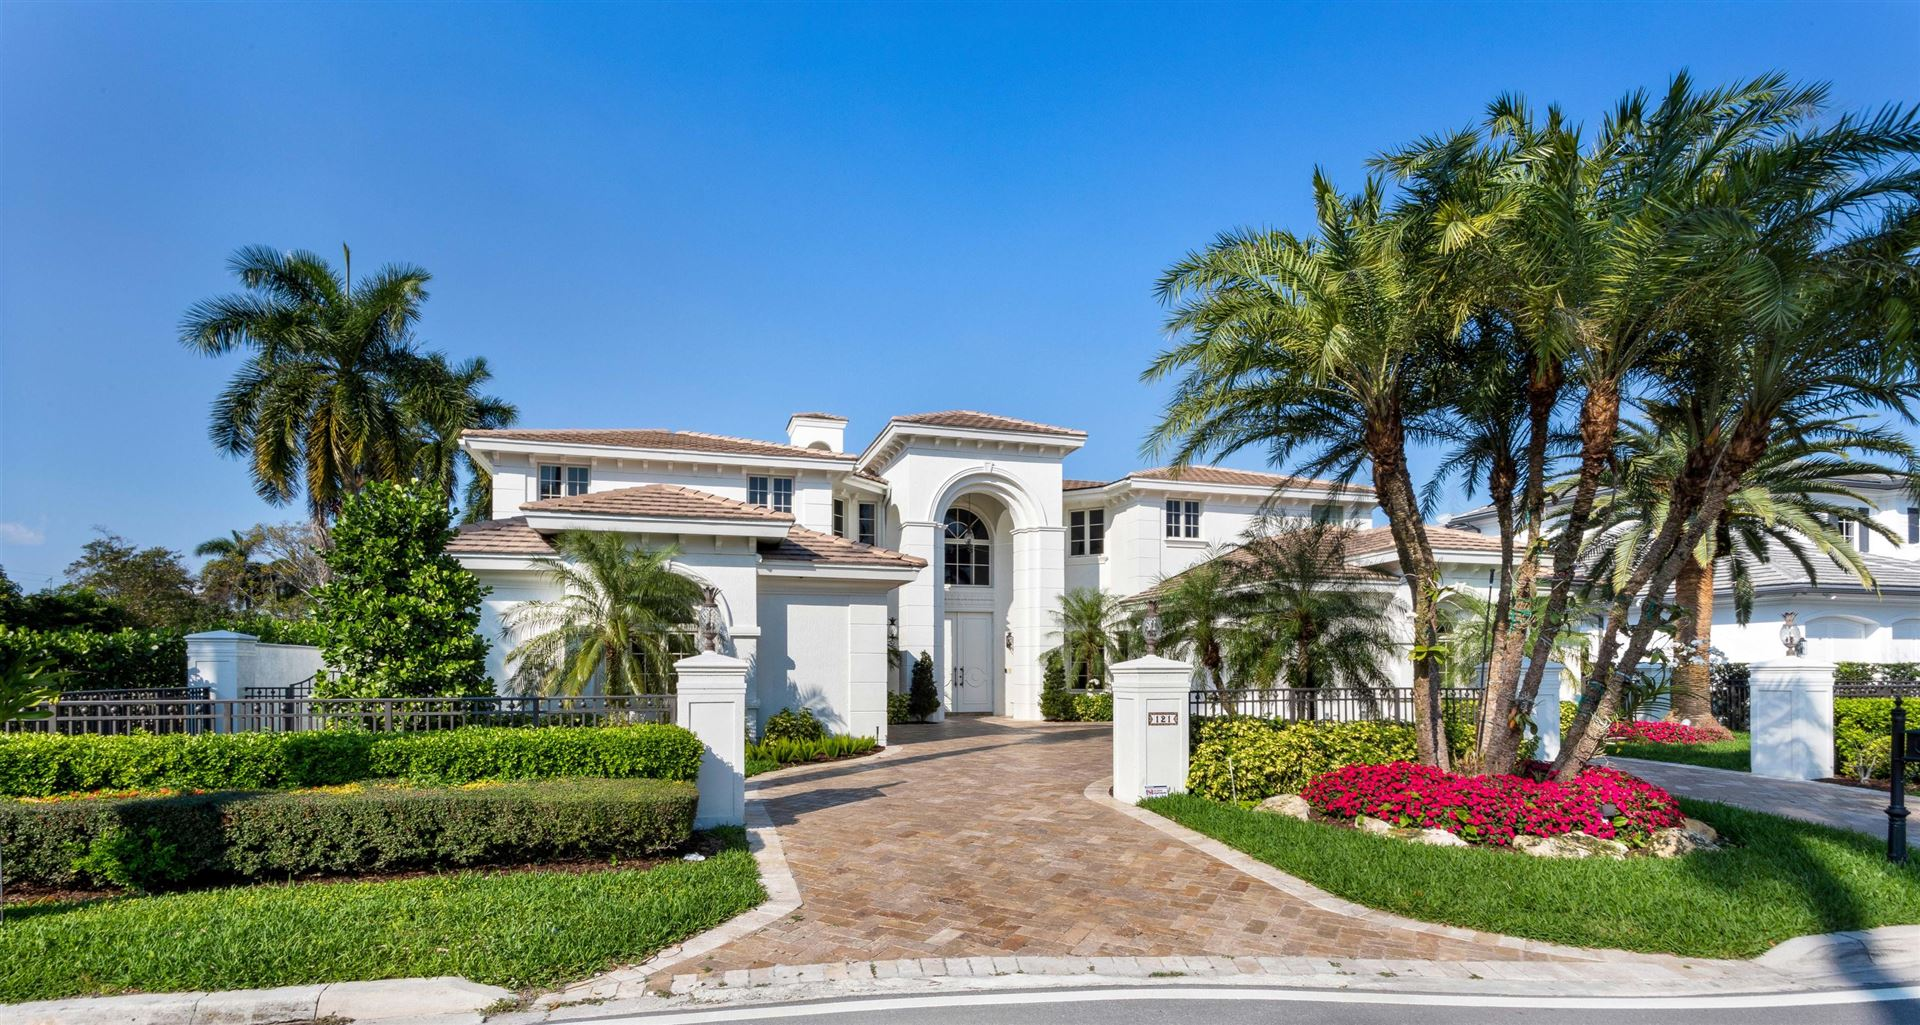 121 Royal Palm Way, Boca Raton, FL 33432 - #: RX-10696243